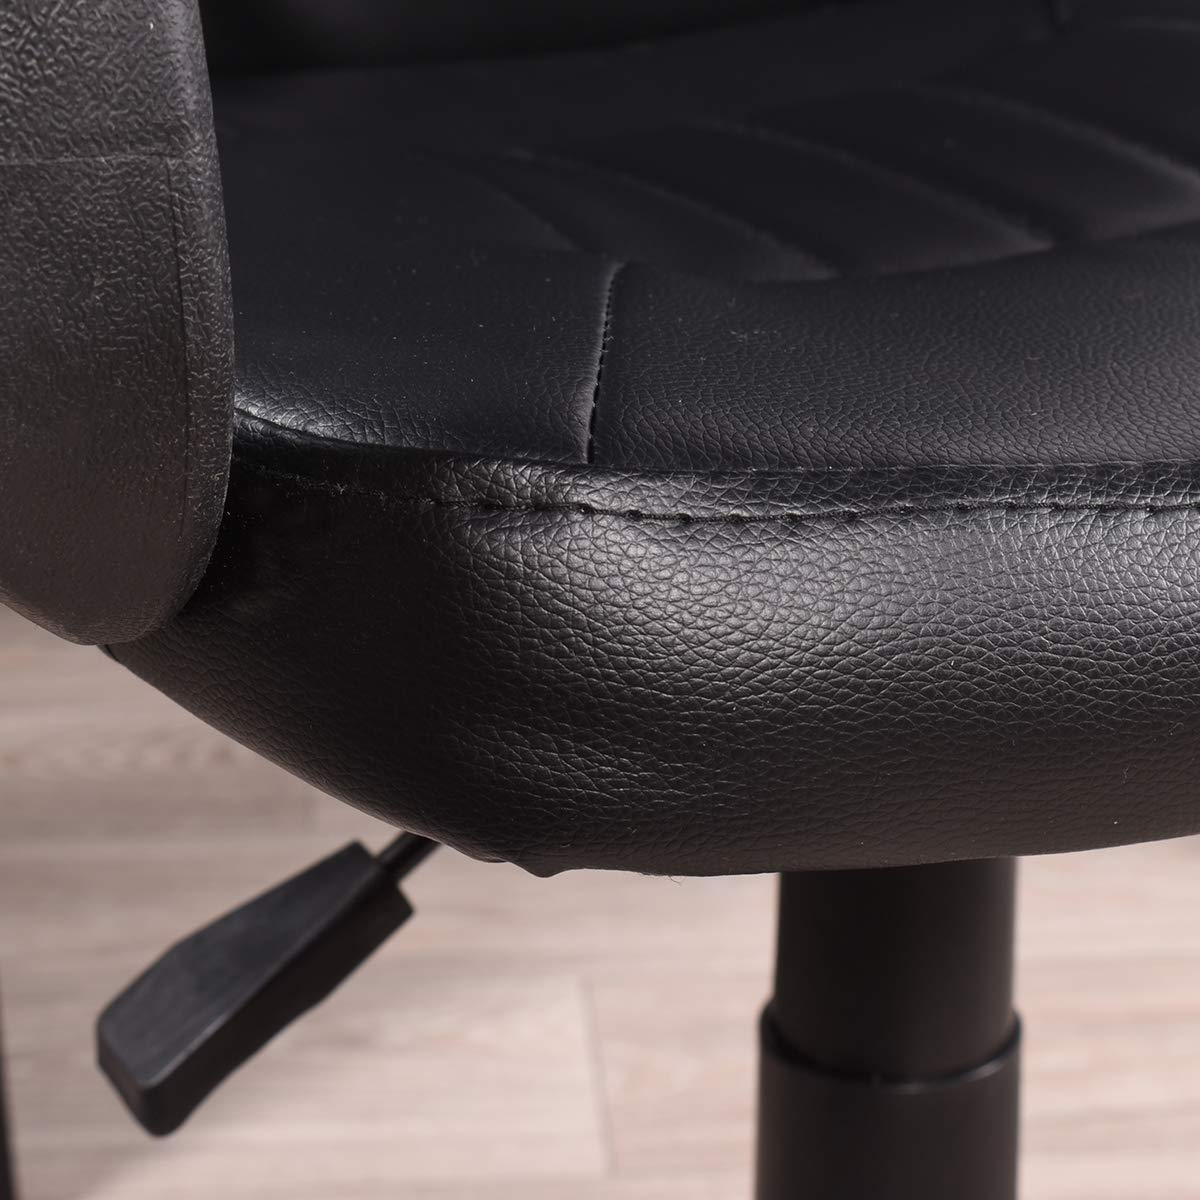 FurnitureR Office Chair Adjustable High Back Swivel Chair Leather Gaming Computer Office Chair